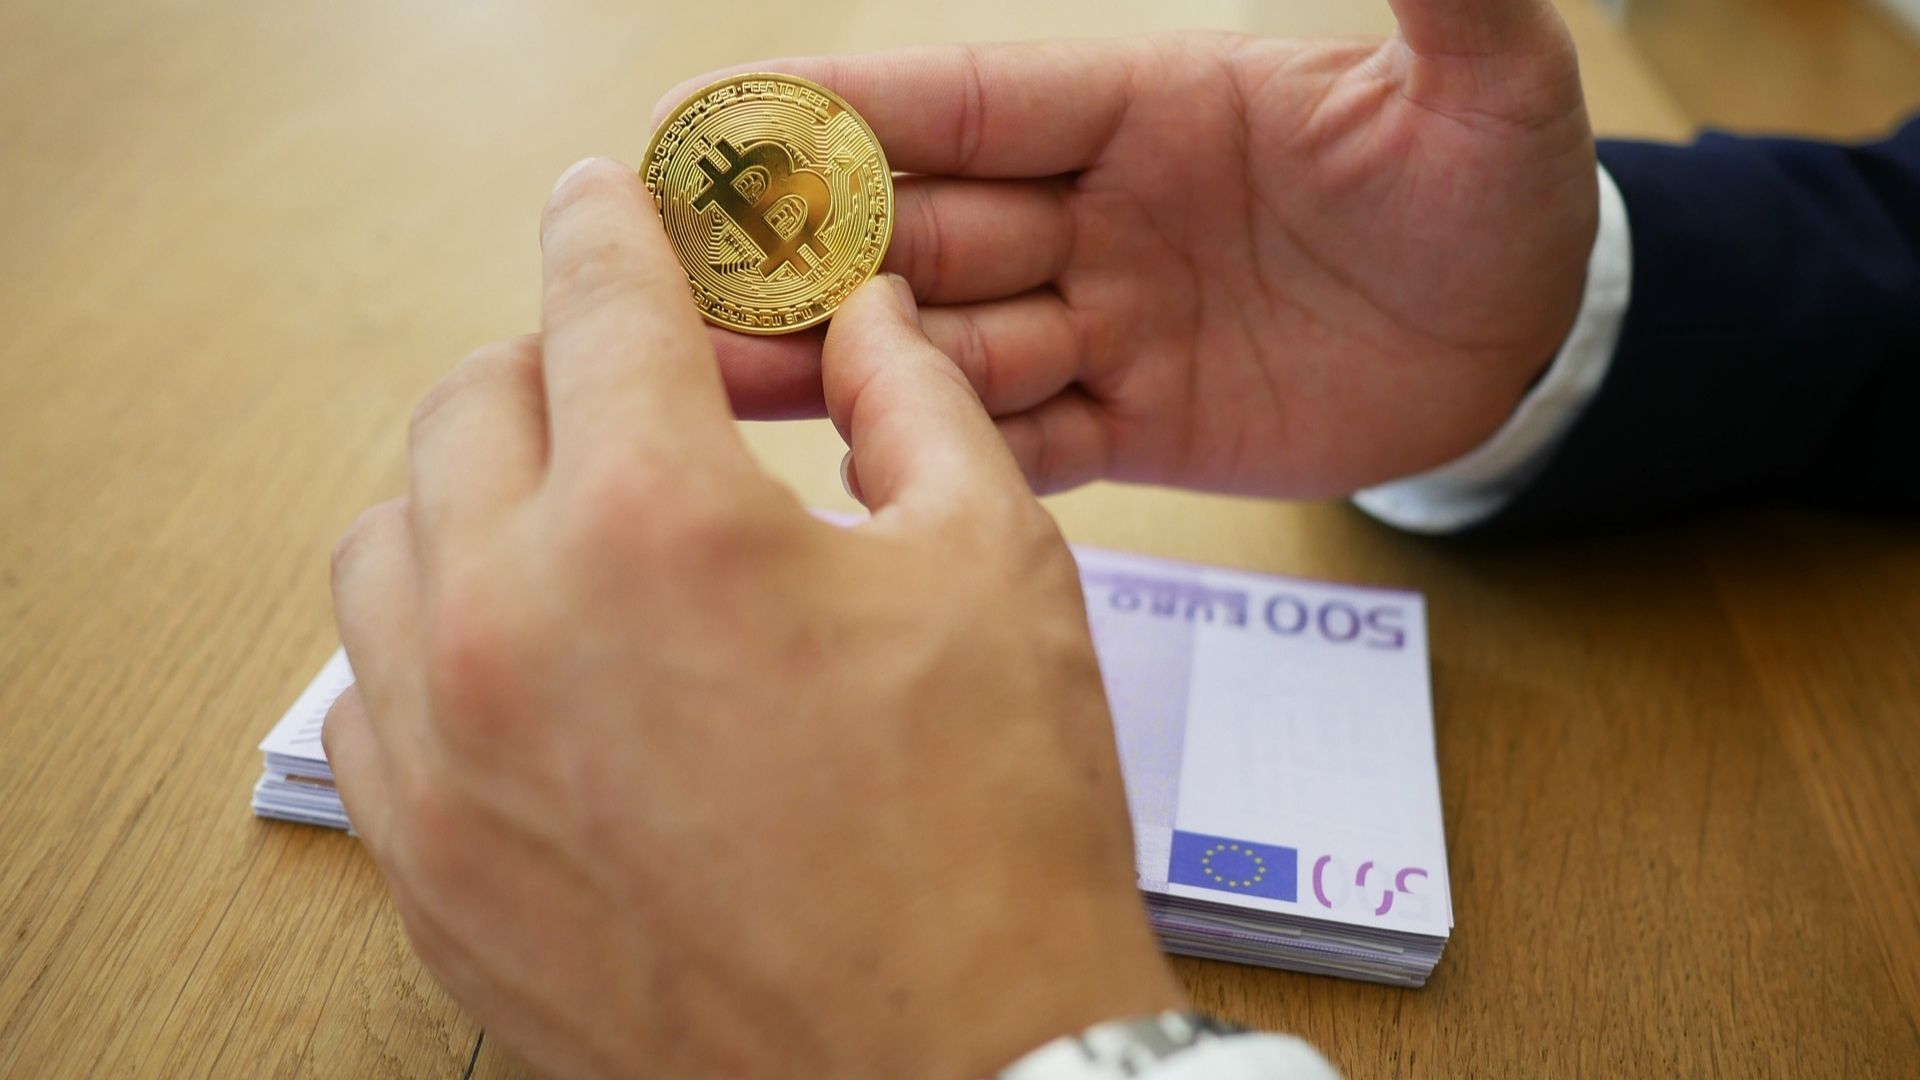 EU To Ban Anonymous Crypto Asset Wallets In AML/CFT Push